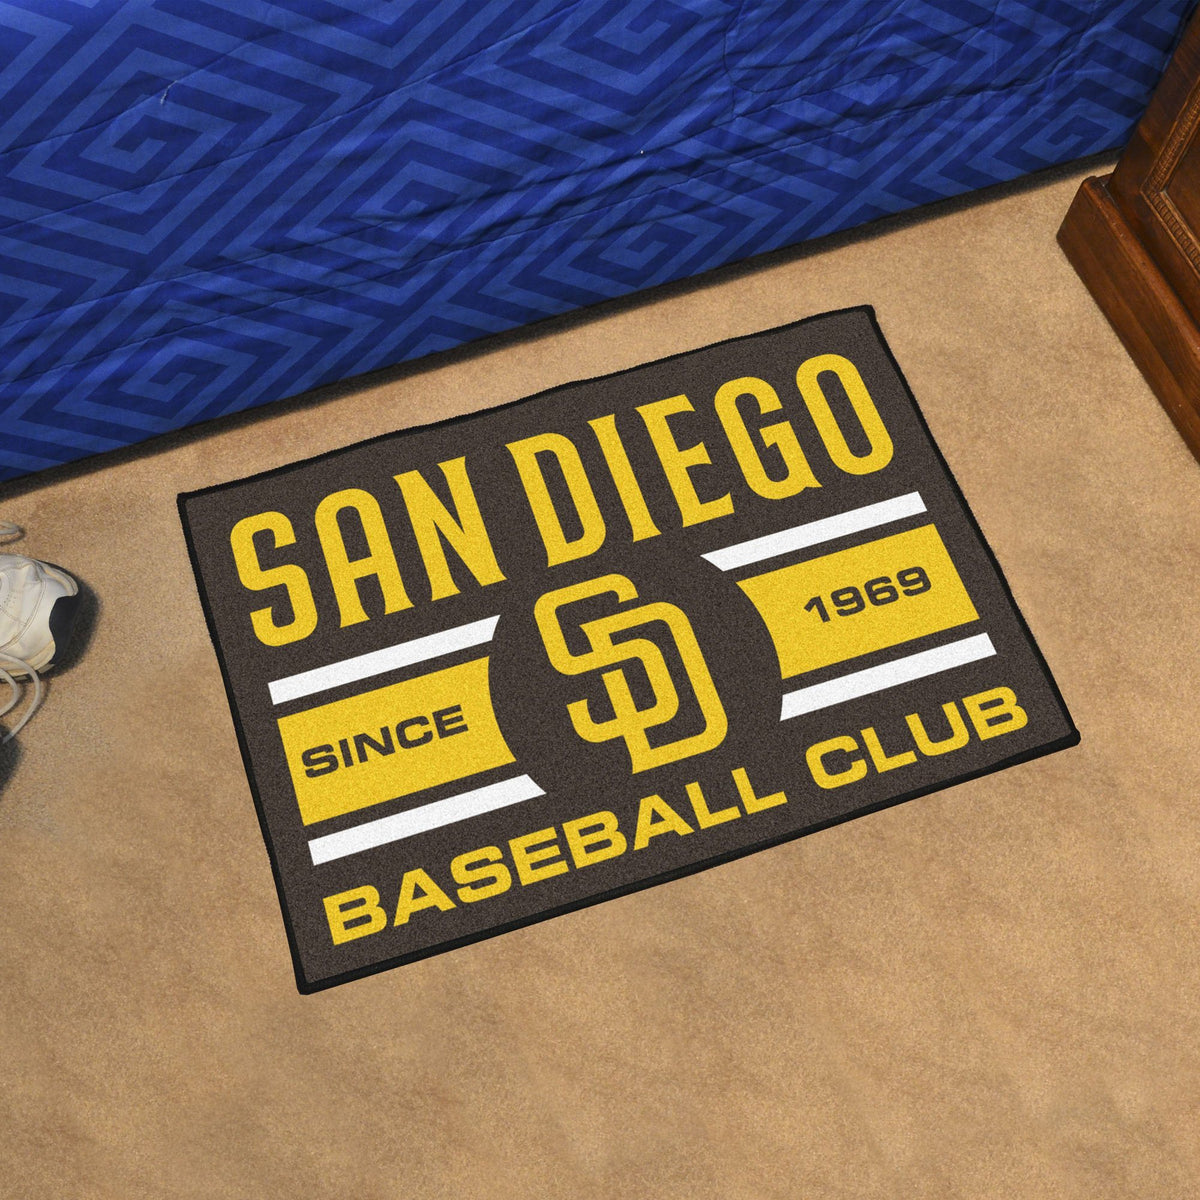 MLB - Uniform Starter Mat MLB Mats, Rectangular Mats, Uniform Starter Mat, MLB, Home Fan Mats San Diego Padres